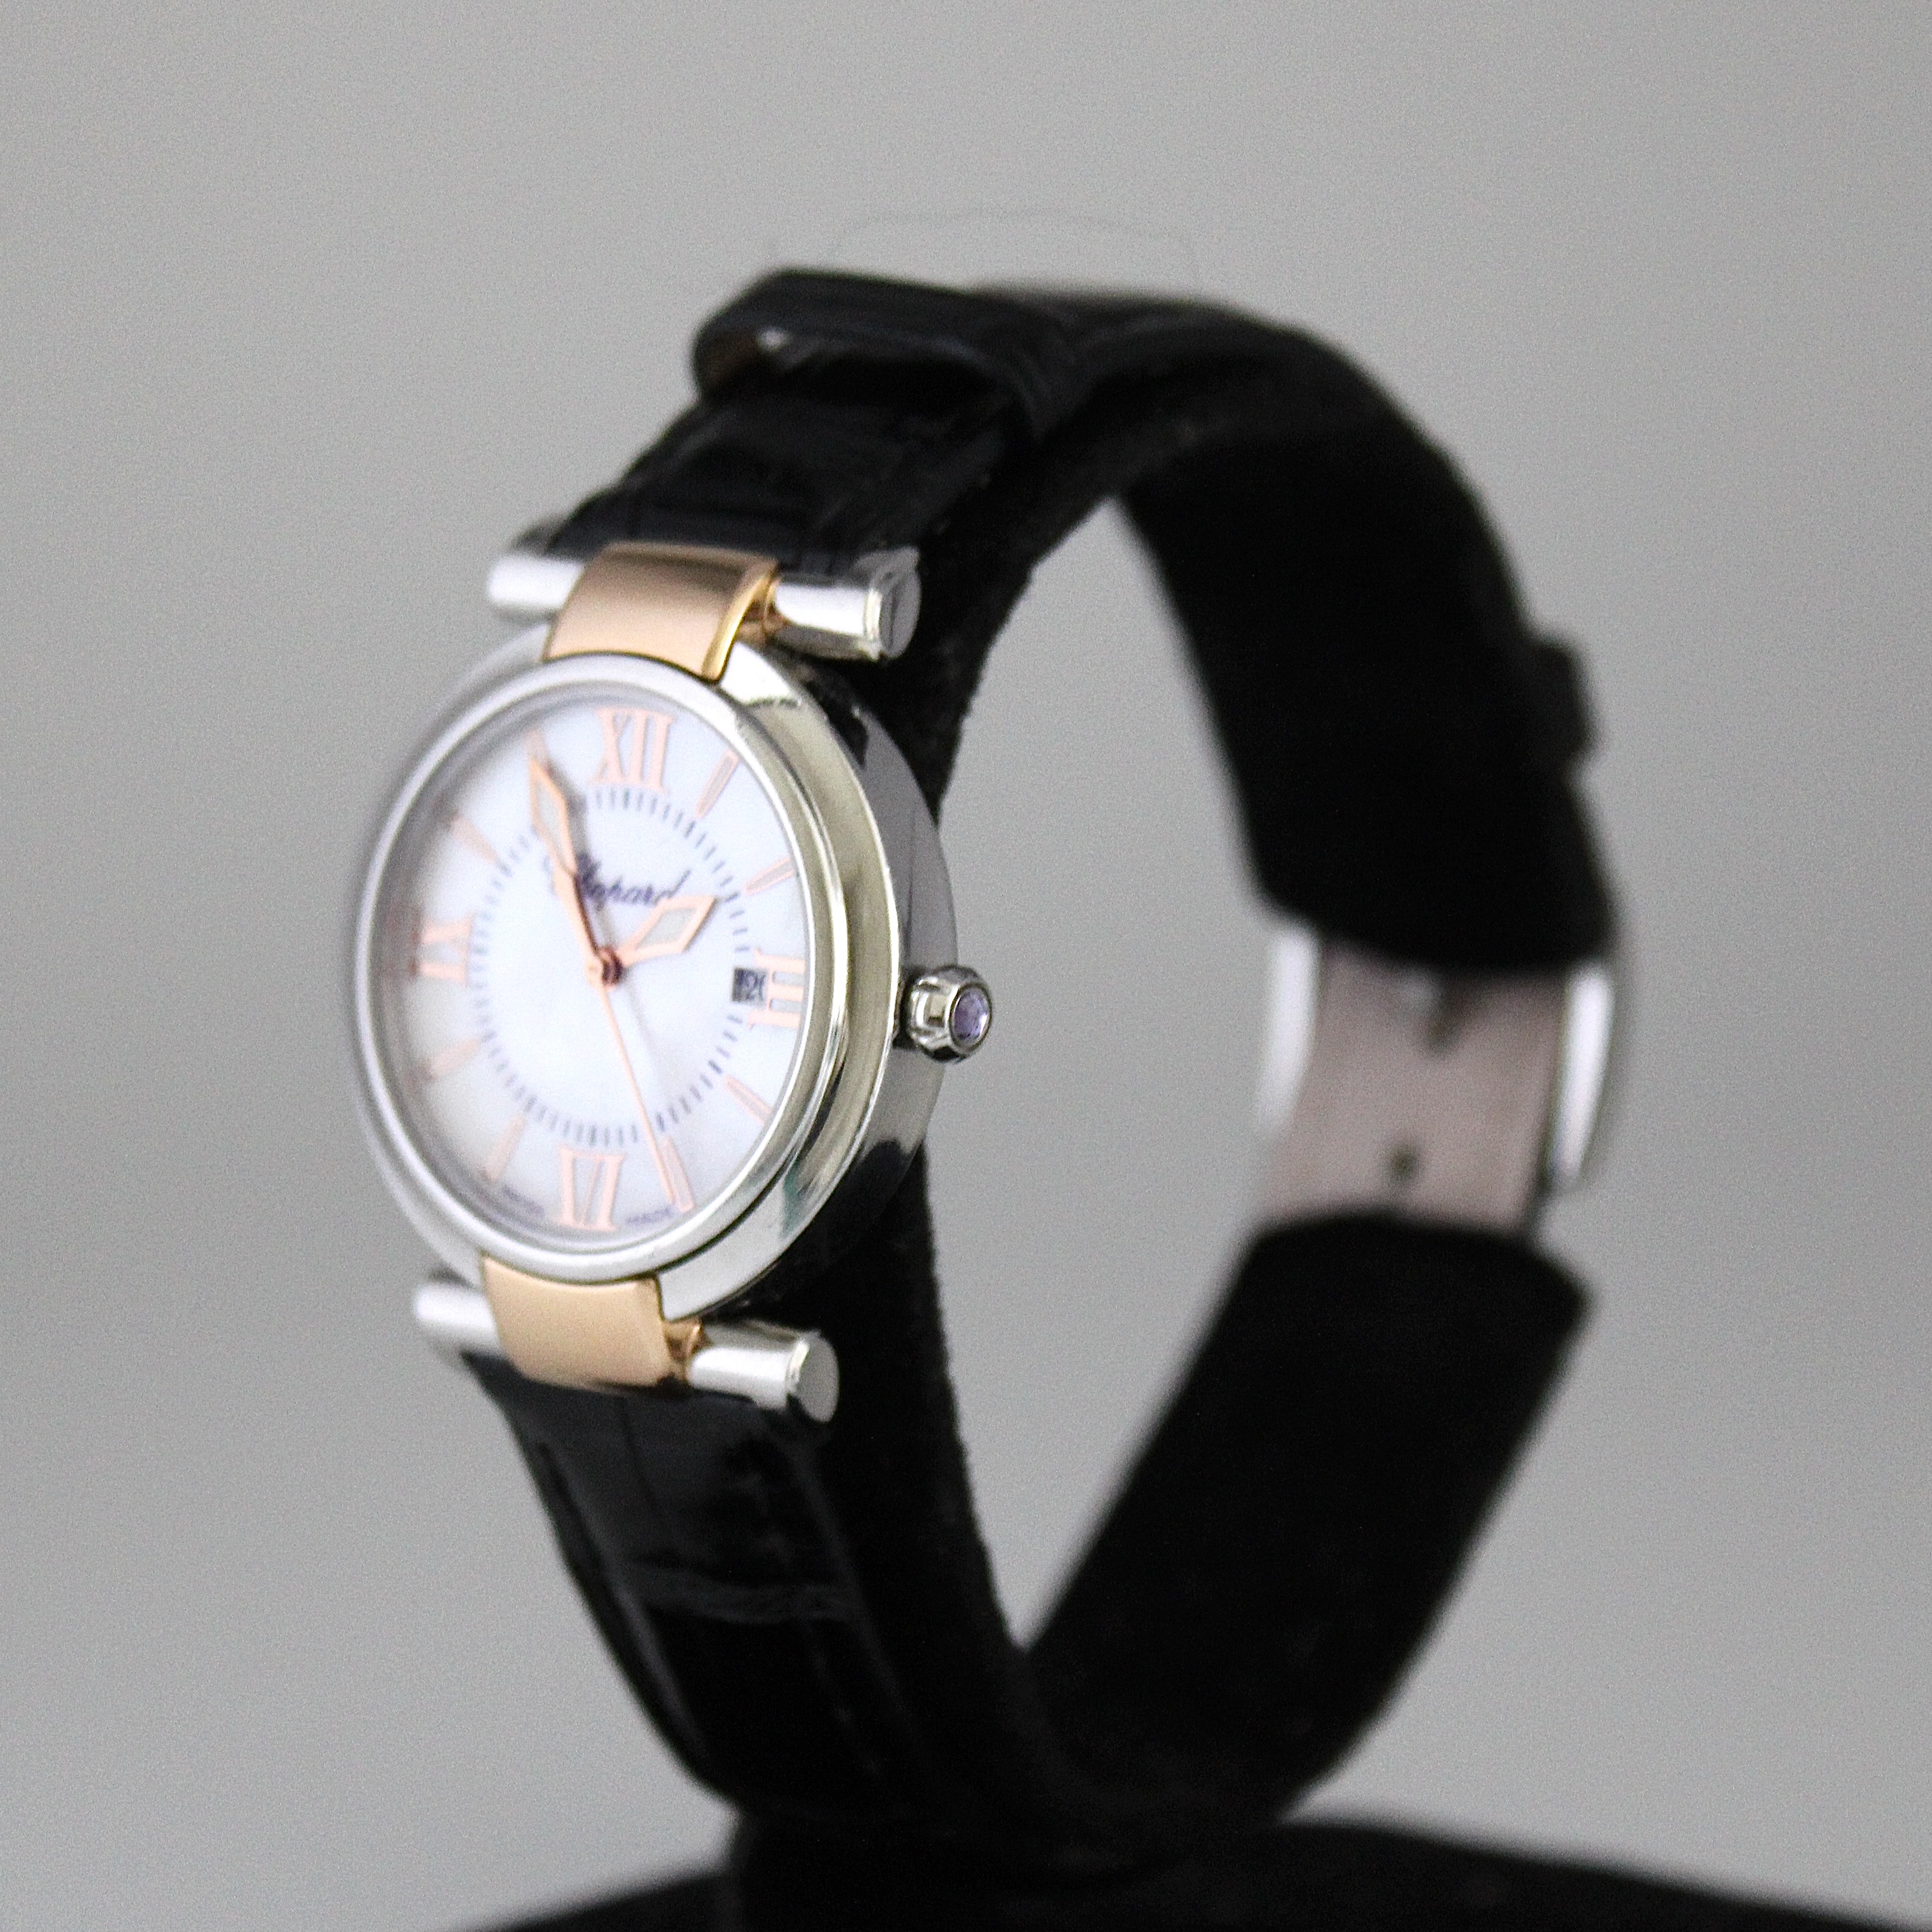 Chopard Imperiale ref 8541 - Image 3 of 4